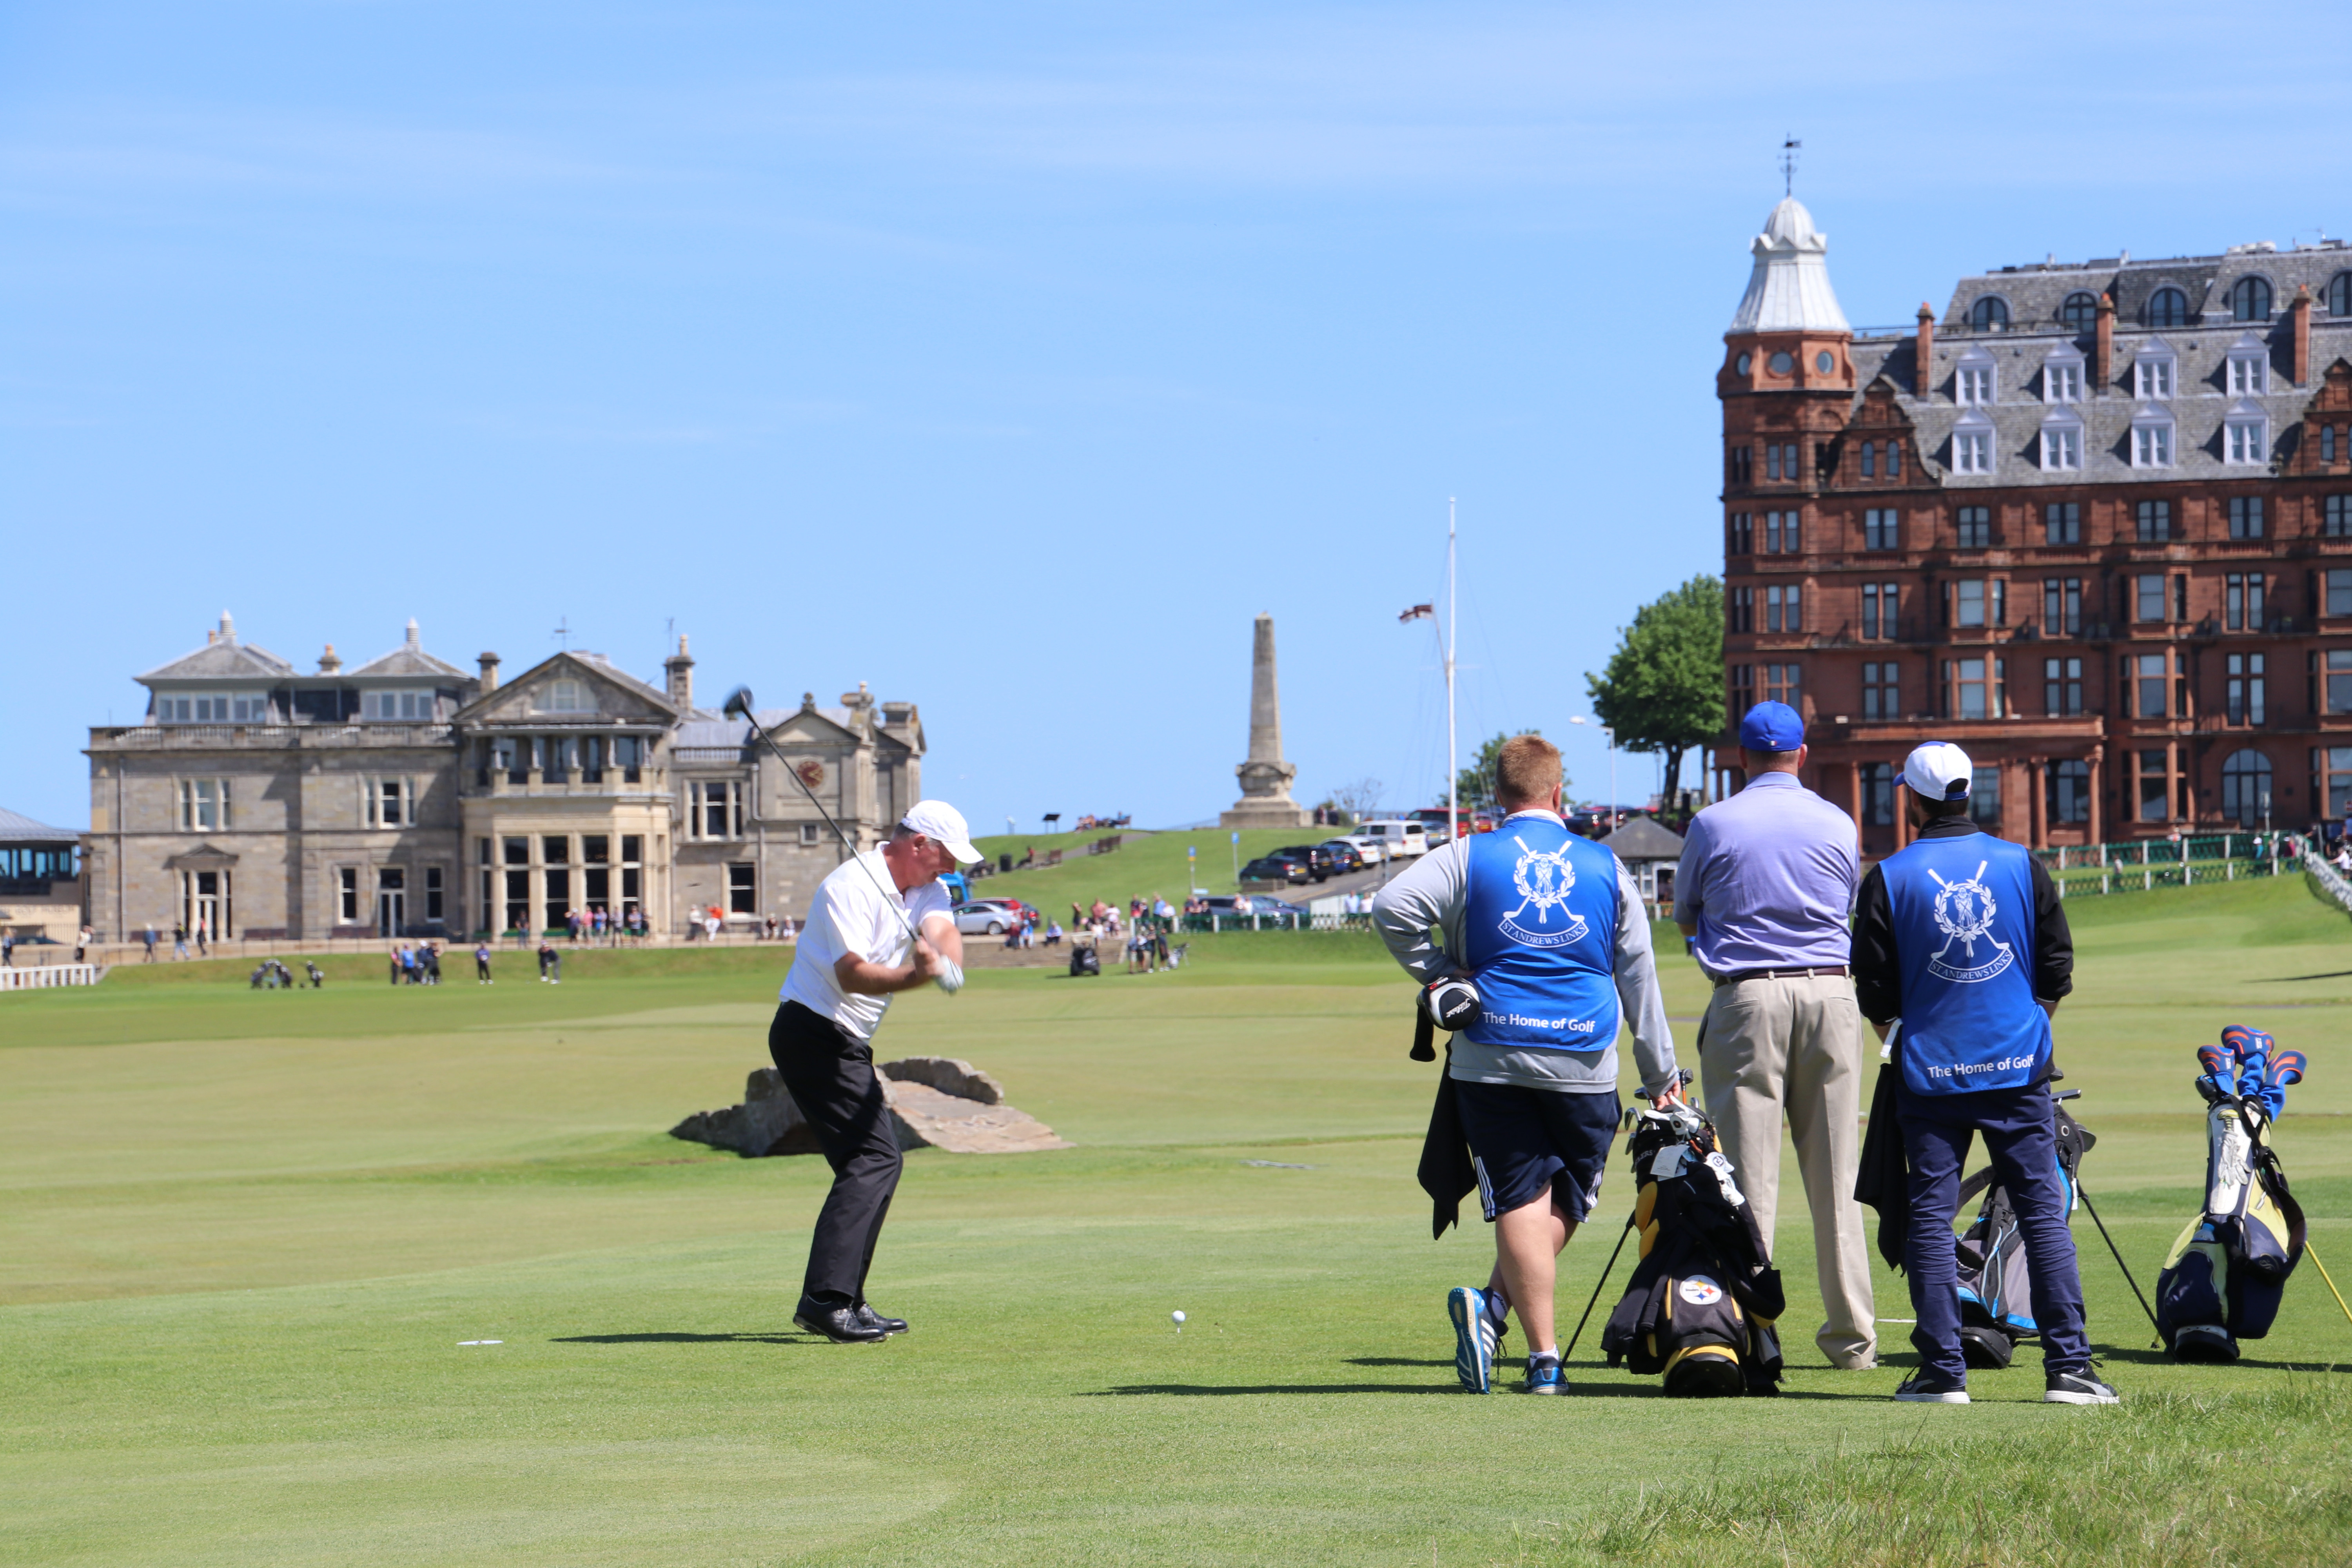 St. Andrews The Old Course, R&A Clubhouse - a magic moment for any Golfer